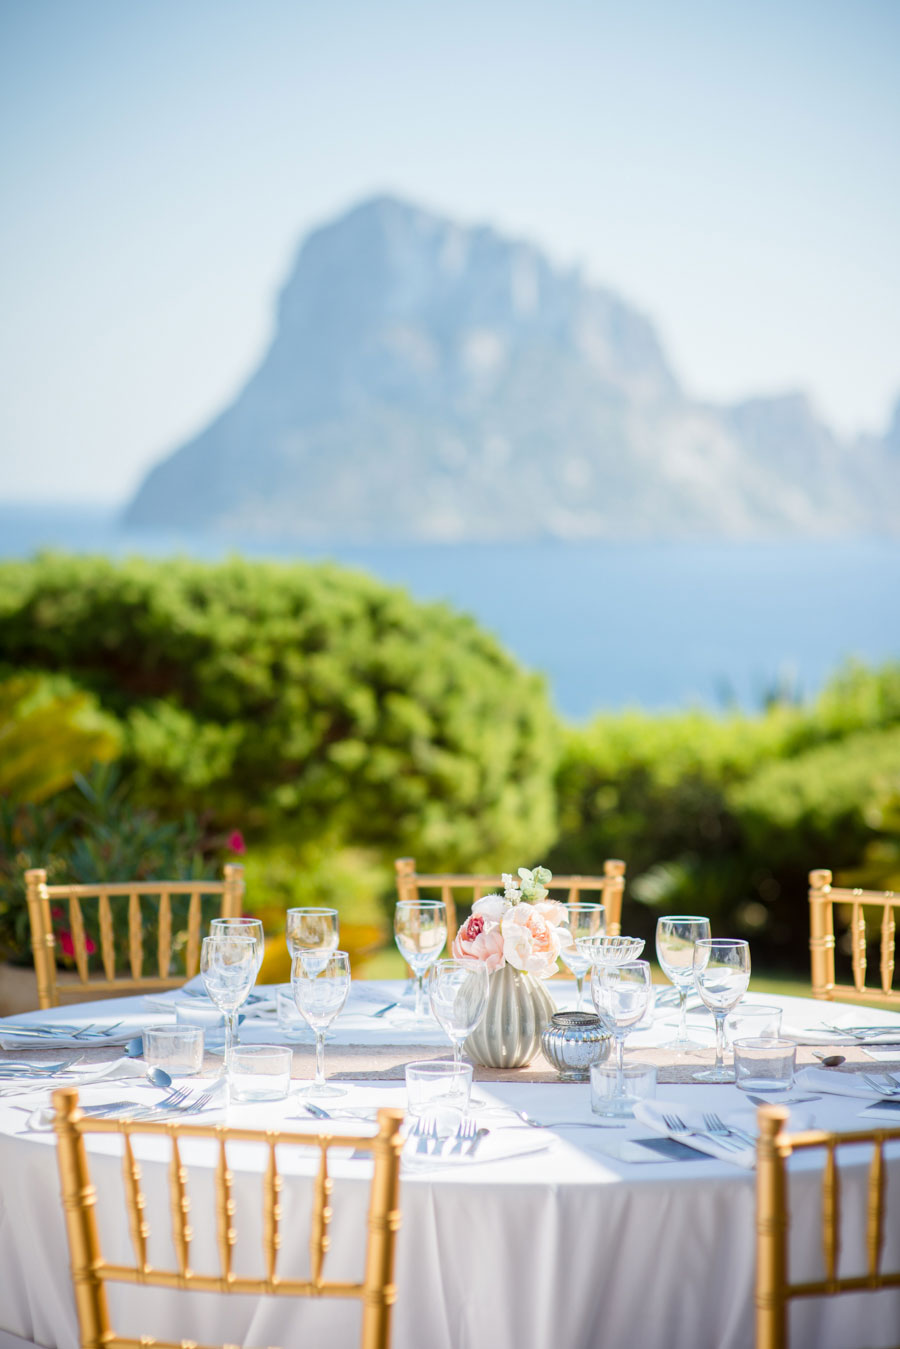 nicola-and-jimmy-es-vedra-ibiza-gypsy-westwood-photography-39